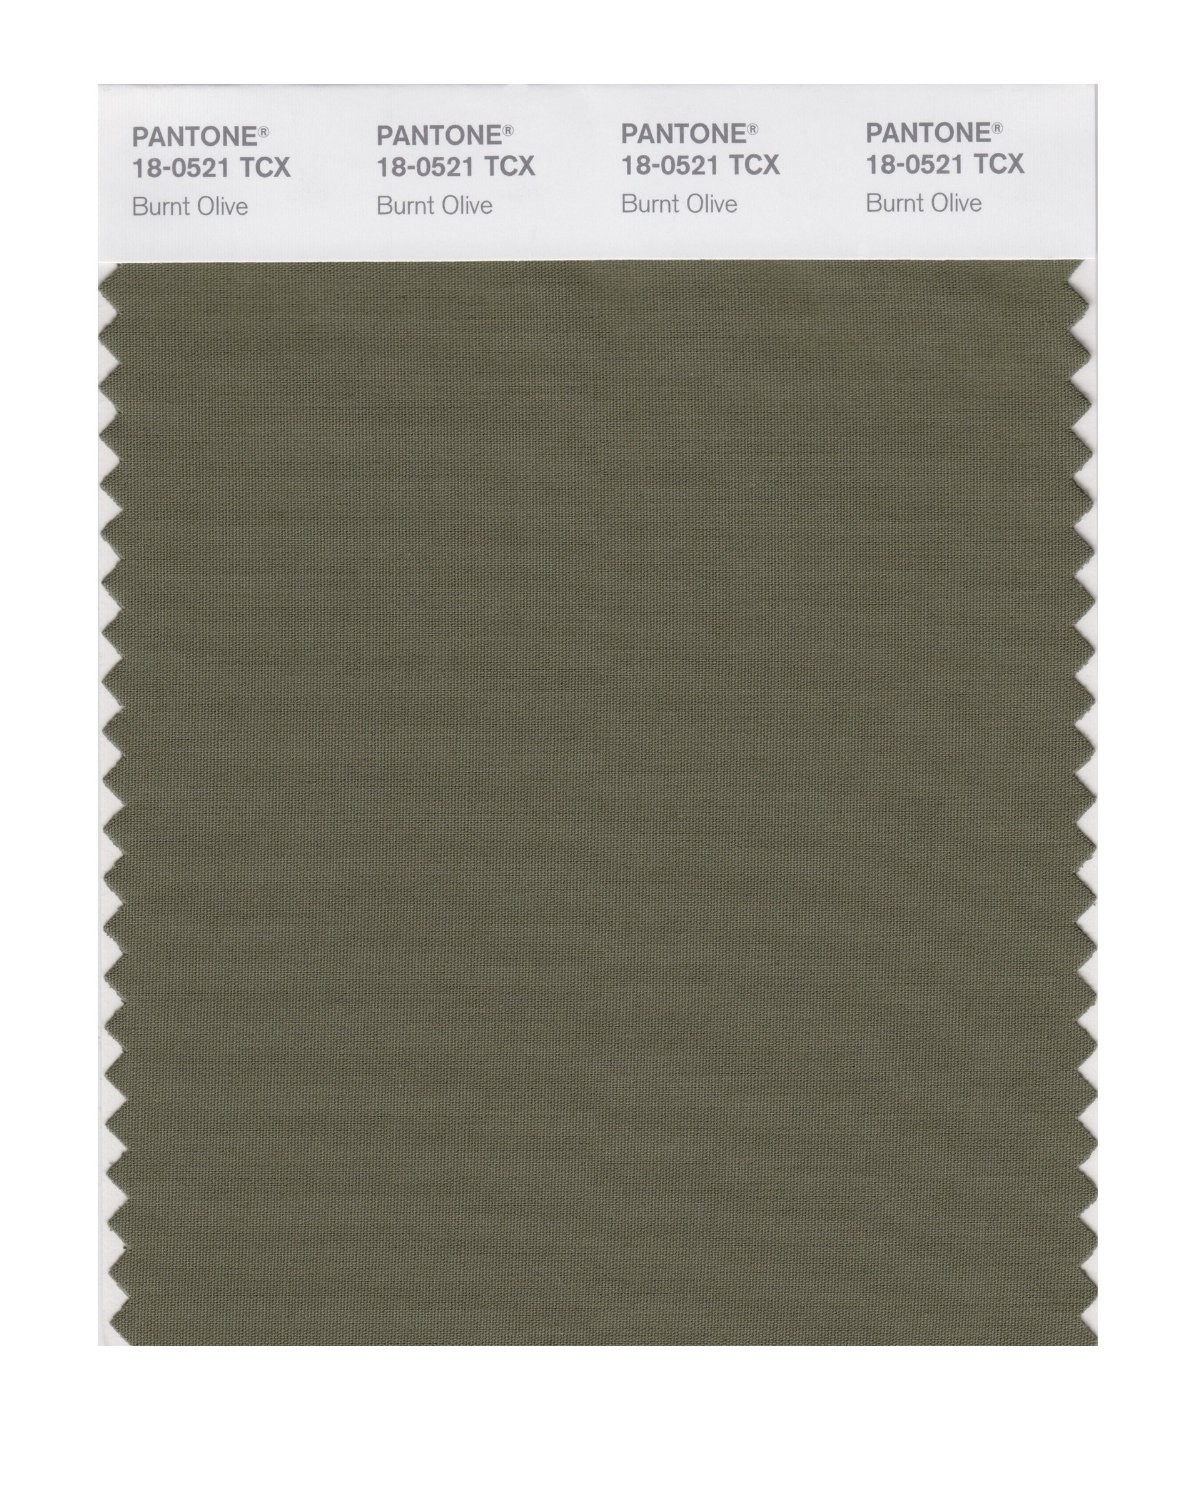 Pantone 18-0521 TCX Swatch Card Burnt Olive